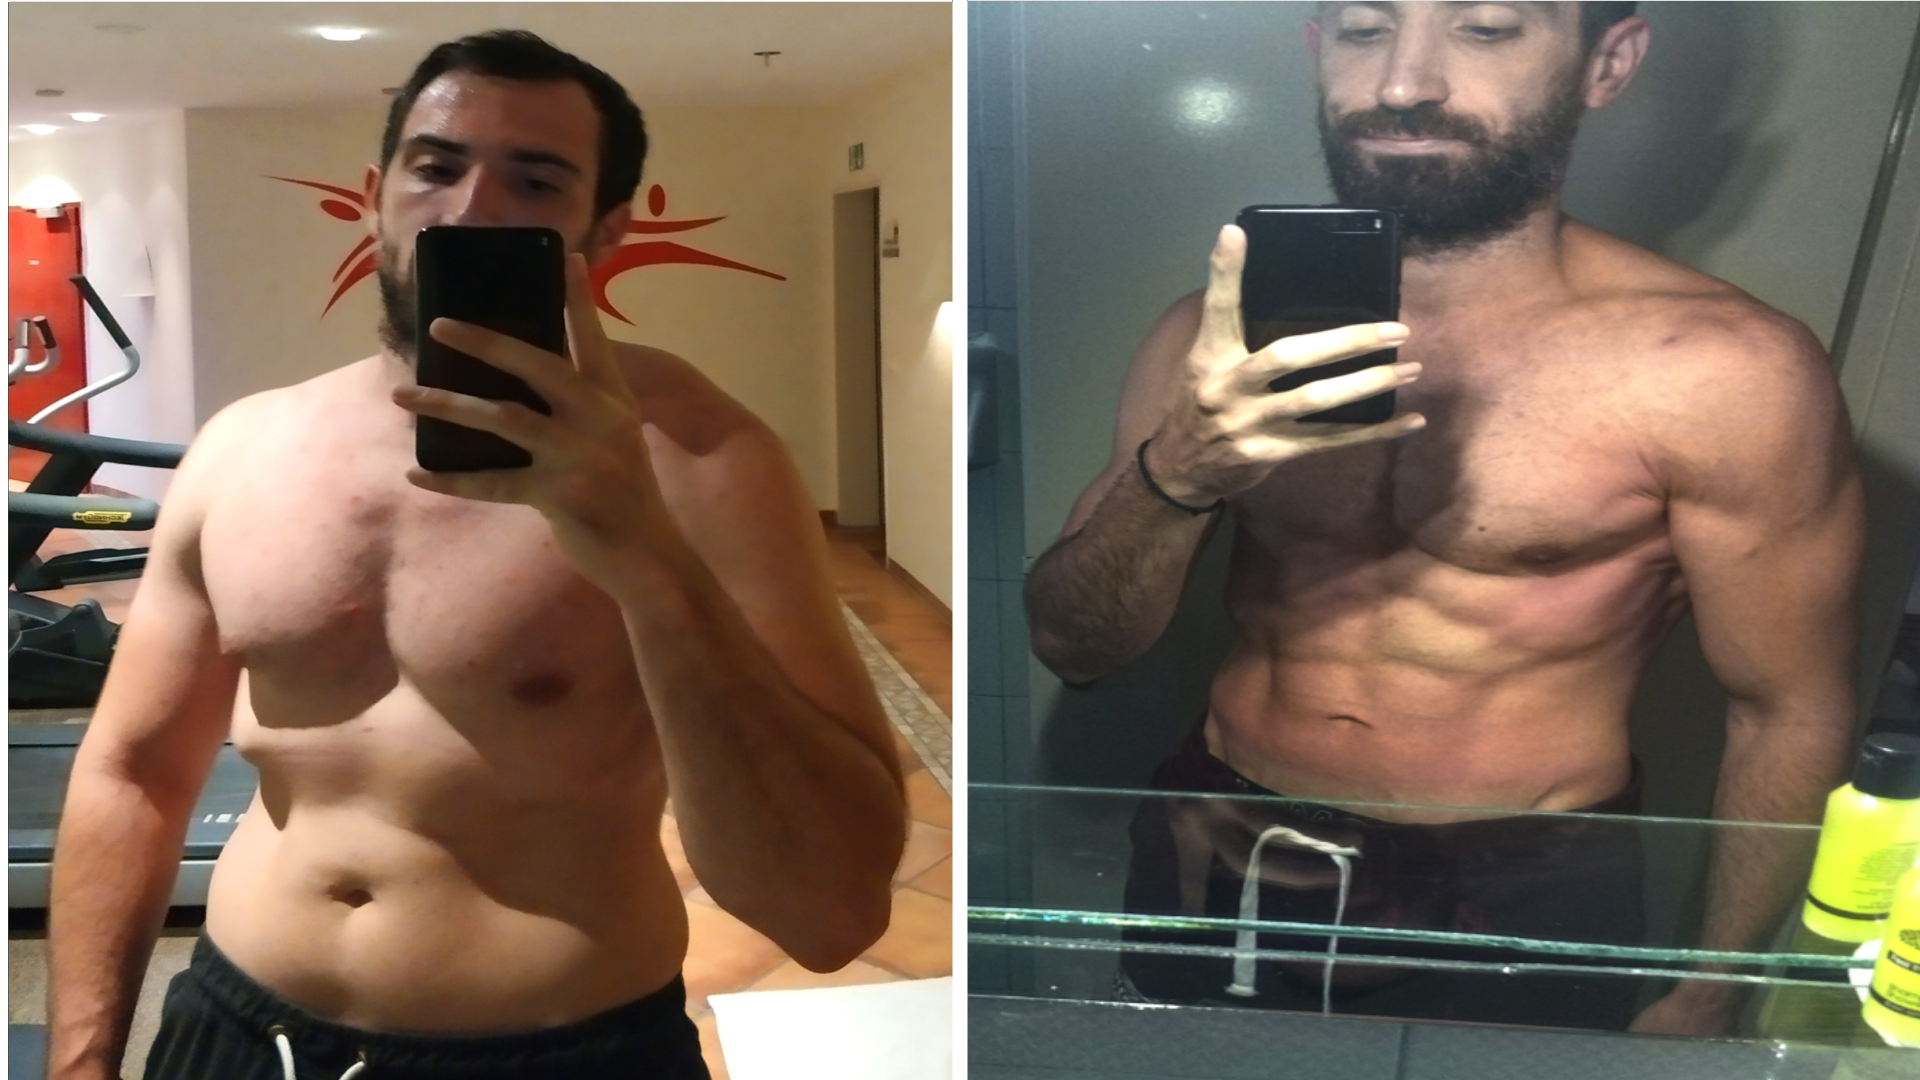 [Image] Hello, I decided to make a change in my life and get stronger both physically and mentally any feedback?